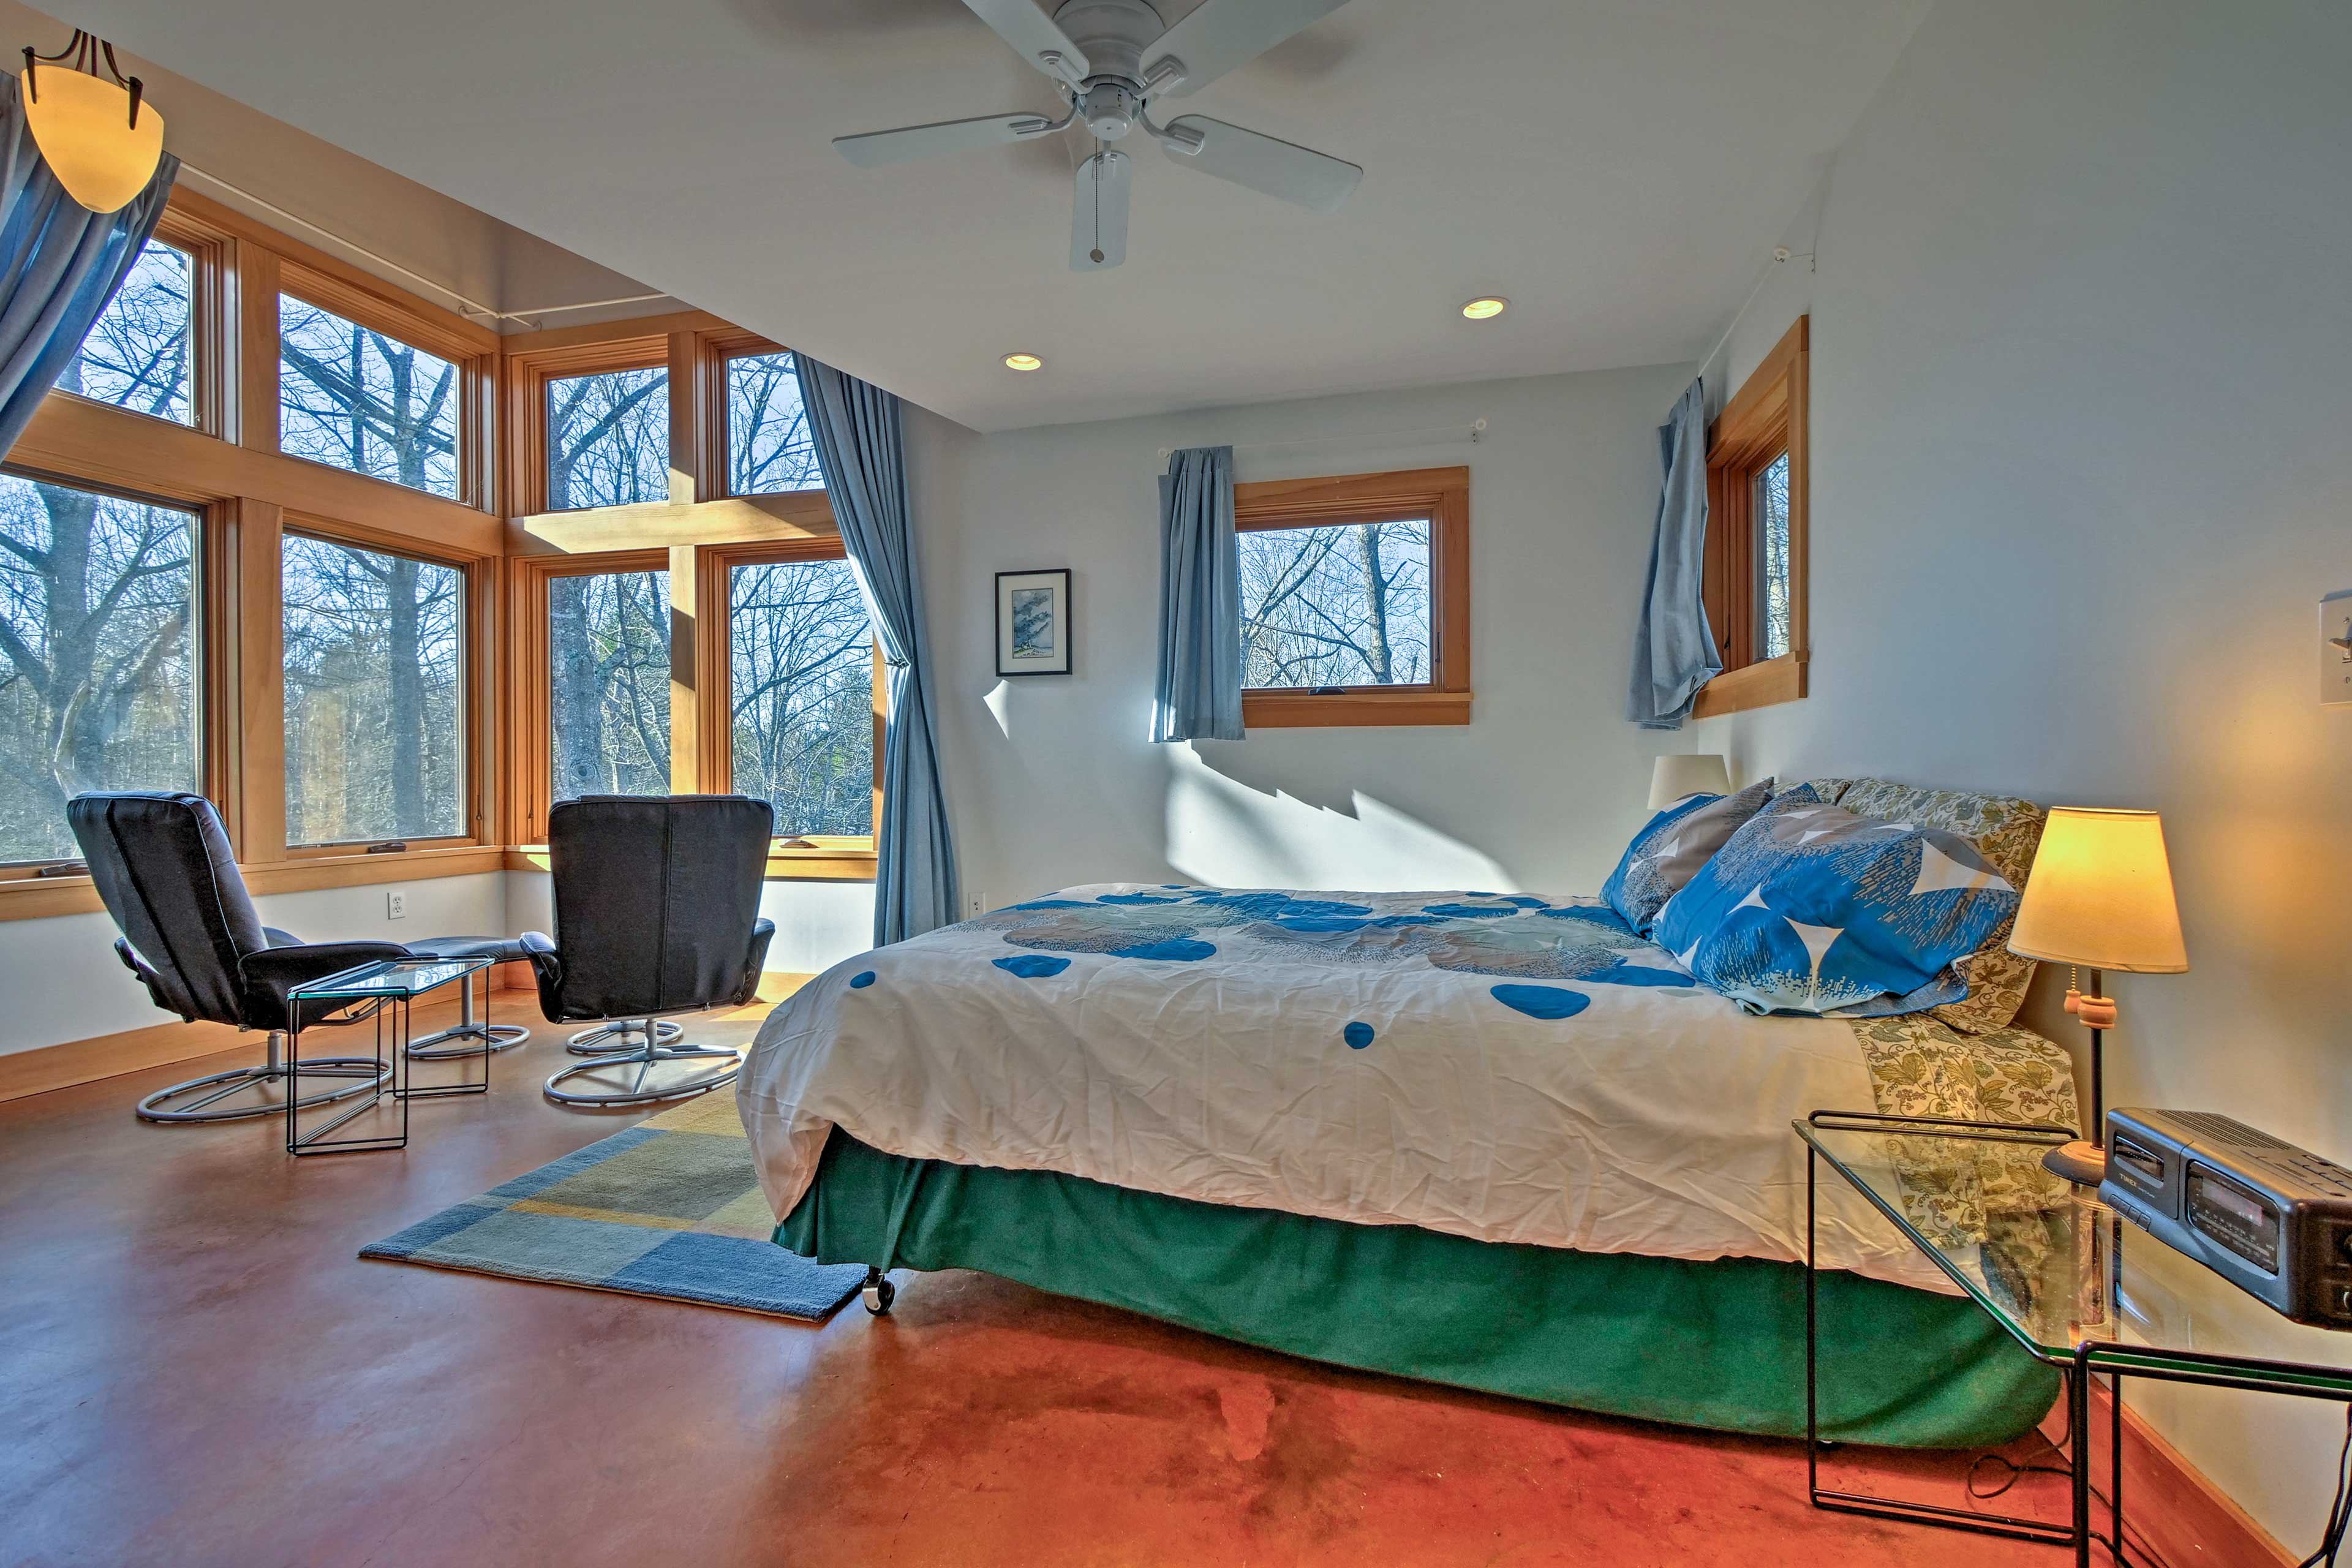 The master bedroom features breathtaking natural views and a plush king bed.